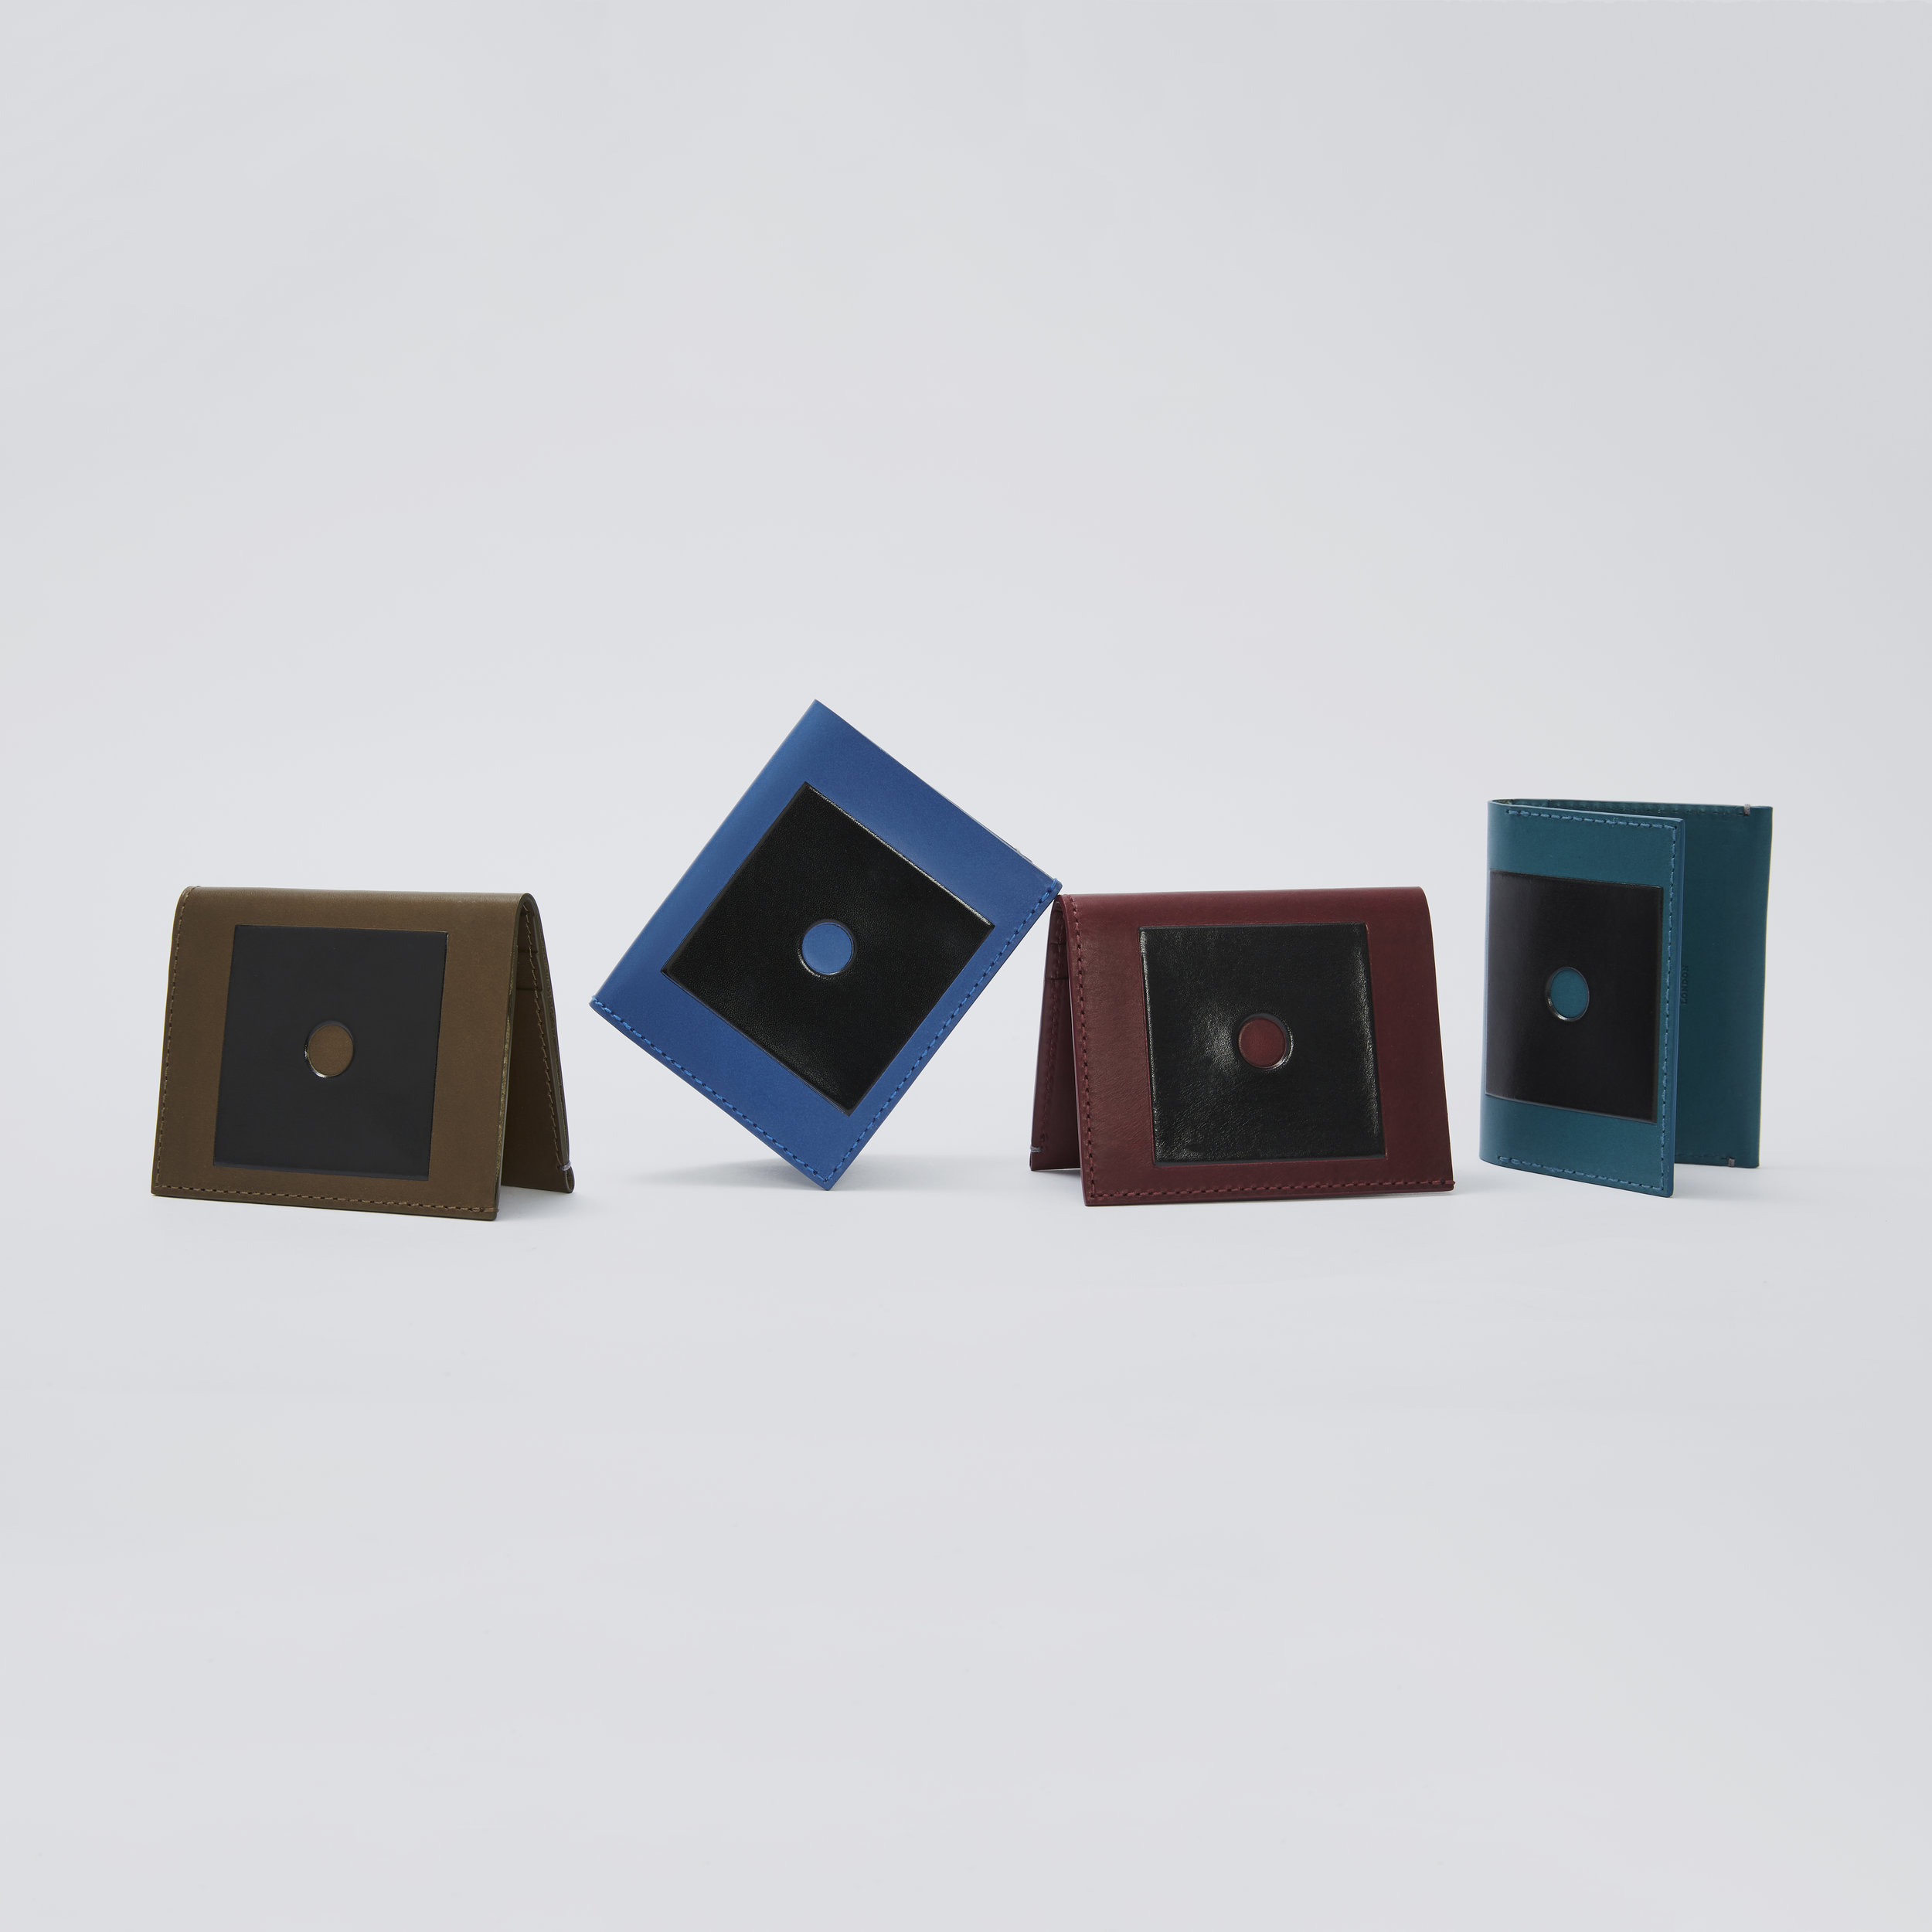 NEW Troubadour Colourful Wallet Collection - Slim Billfold Wallets - Group Shot.jpg